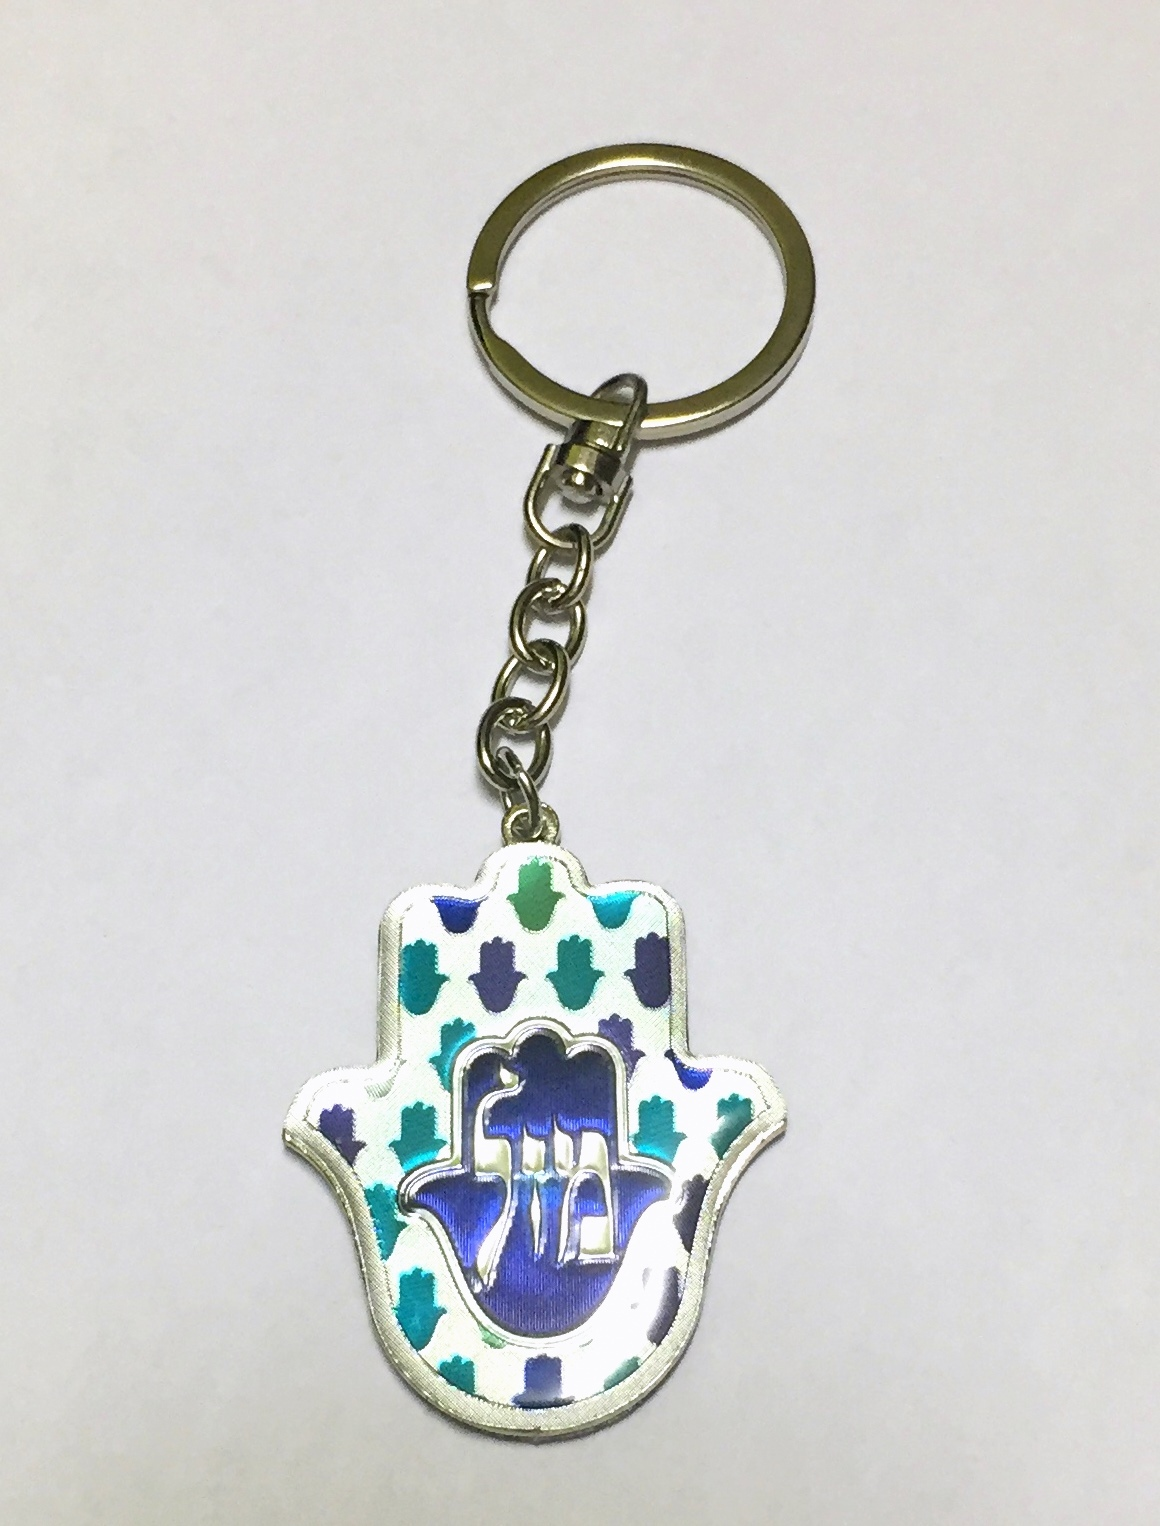 Judaica Keyring Keychain Key Charm Holder Hamsa Metal Epoxy Blue Traveler Prayer